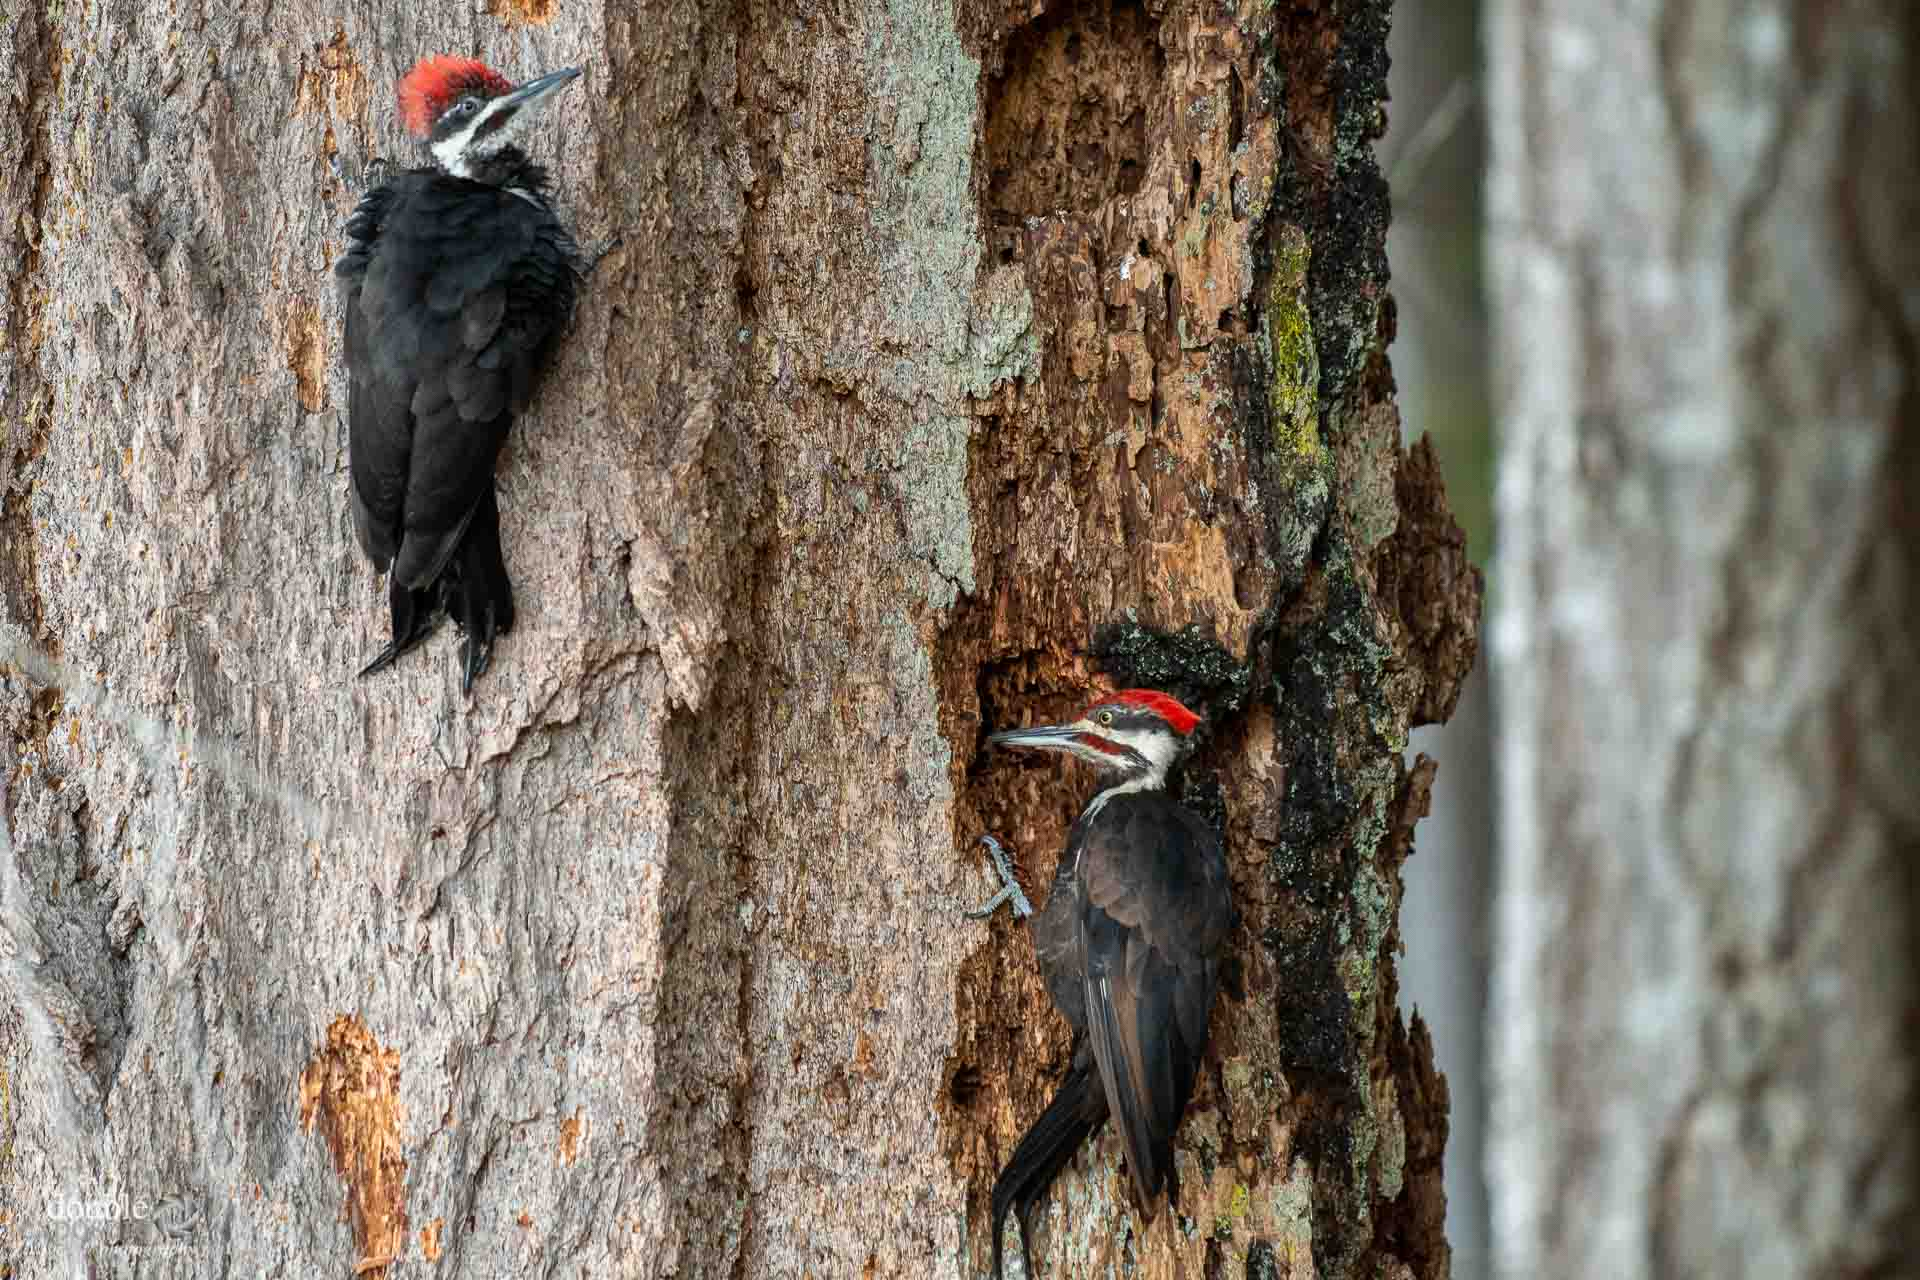 Two pileated woodpeckers at work